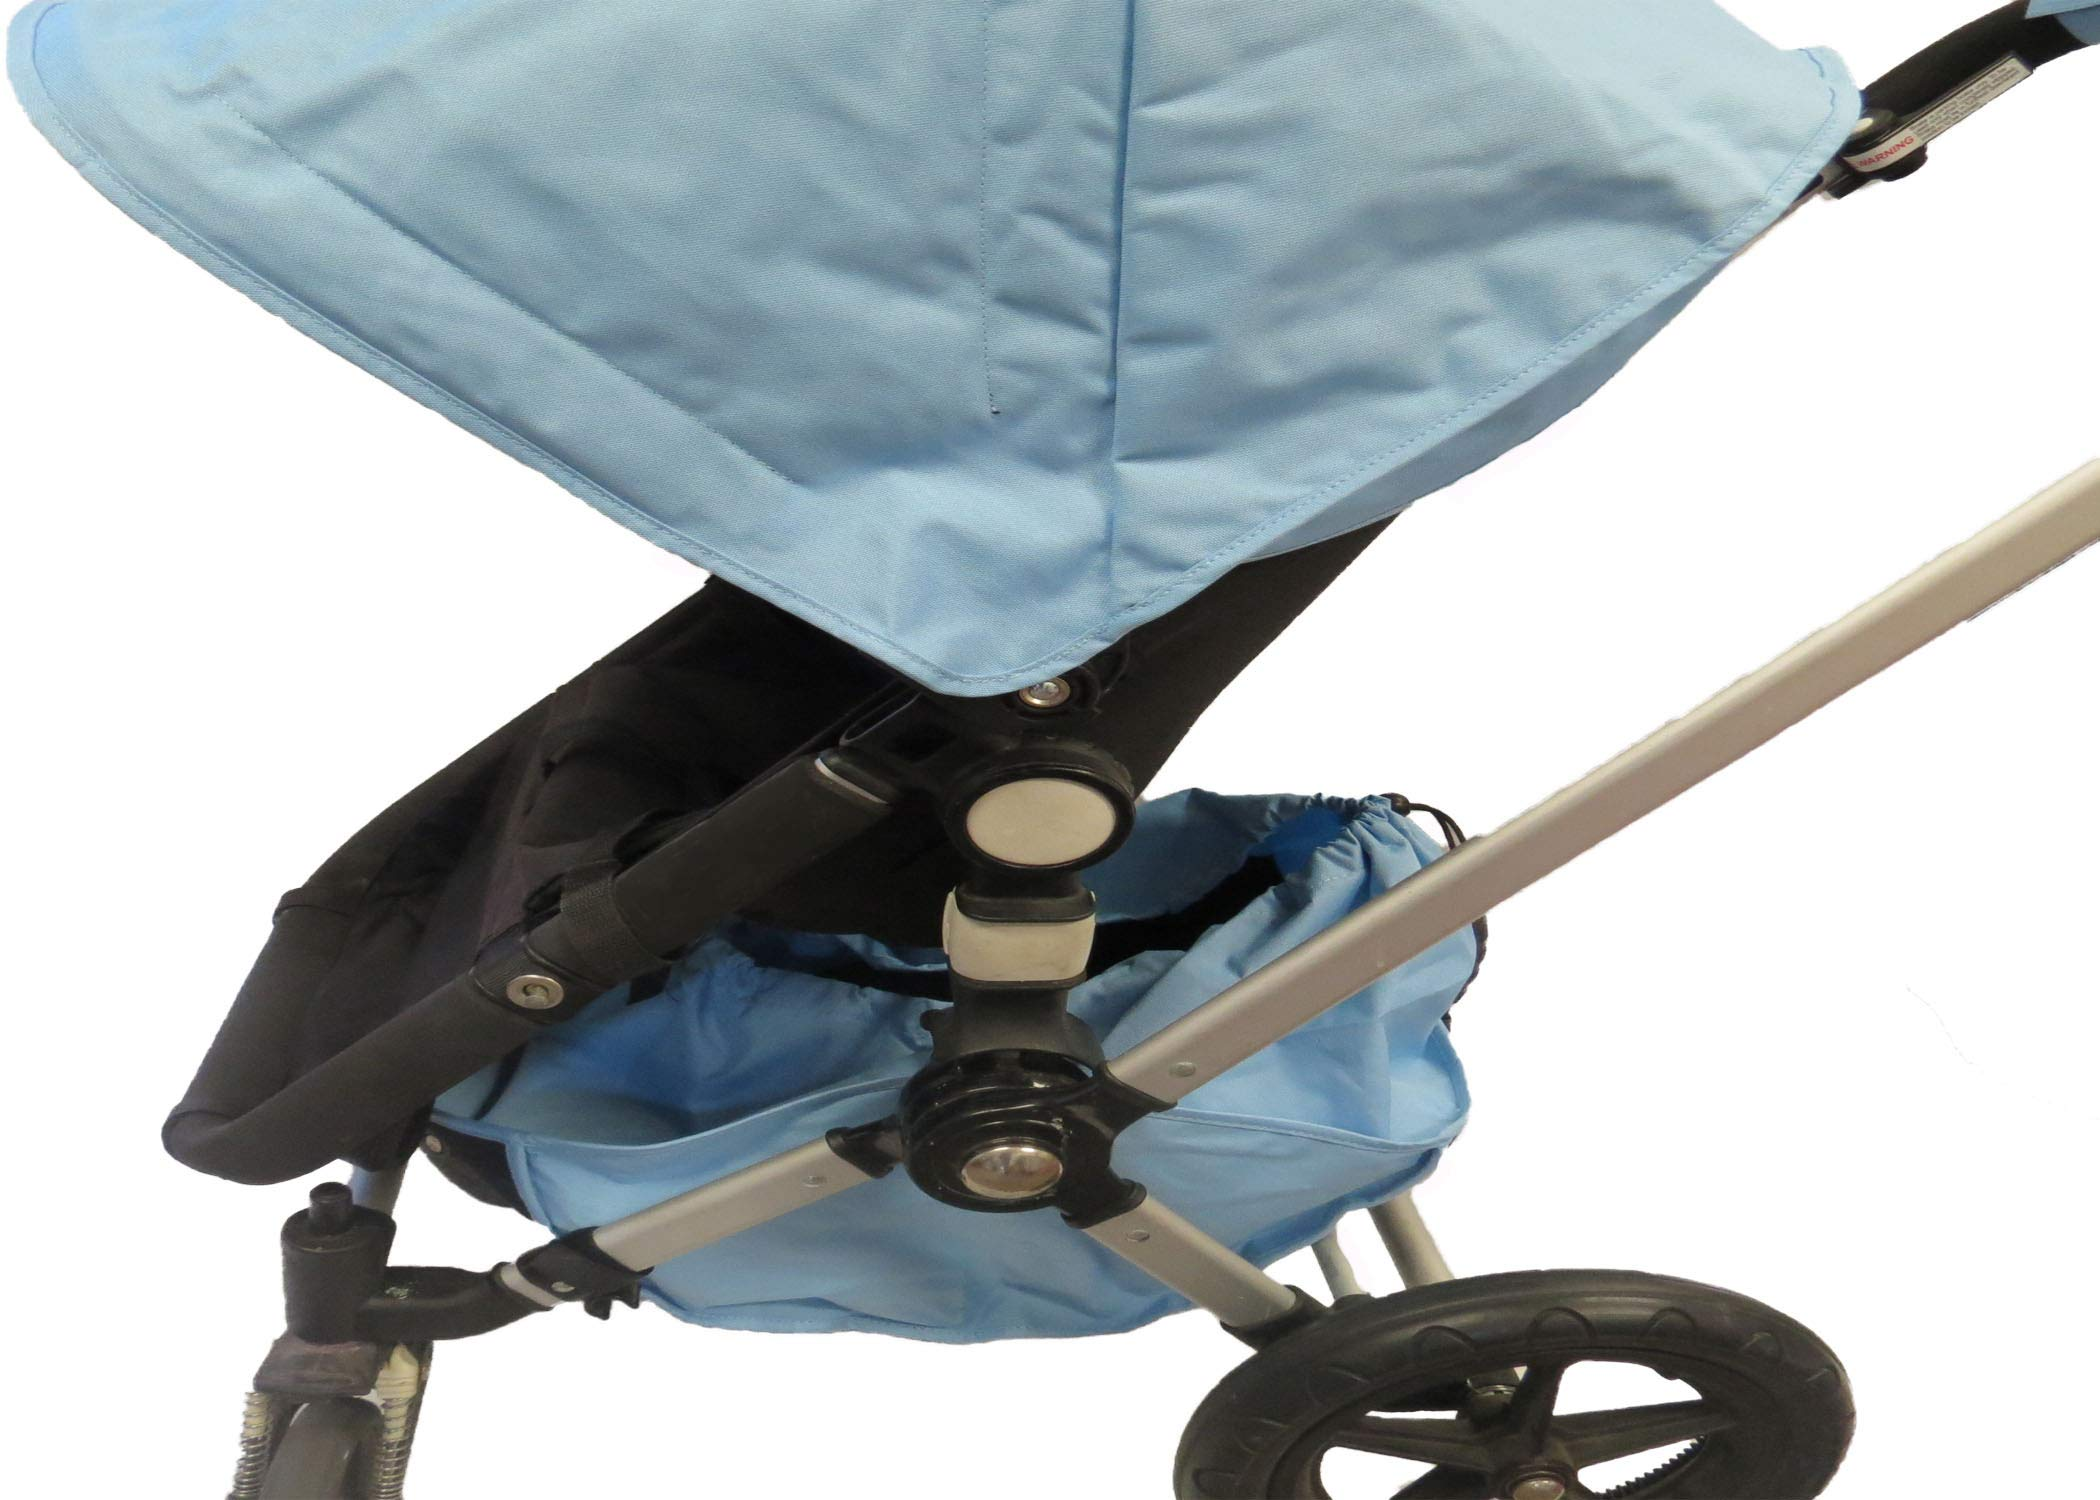 Light Blue Sun Shade Canopy and Large Under Seat Storage Basket Plus Free Handle Bar Covers for Bugaboo Cameleon 1, 2, 3, Frog Baby Child Strollers